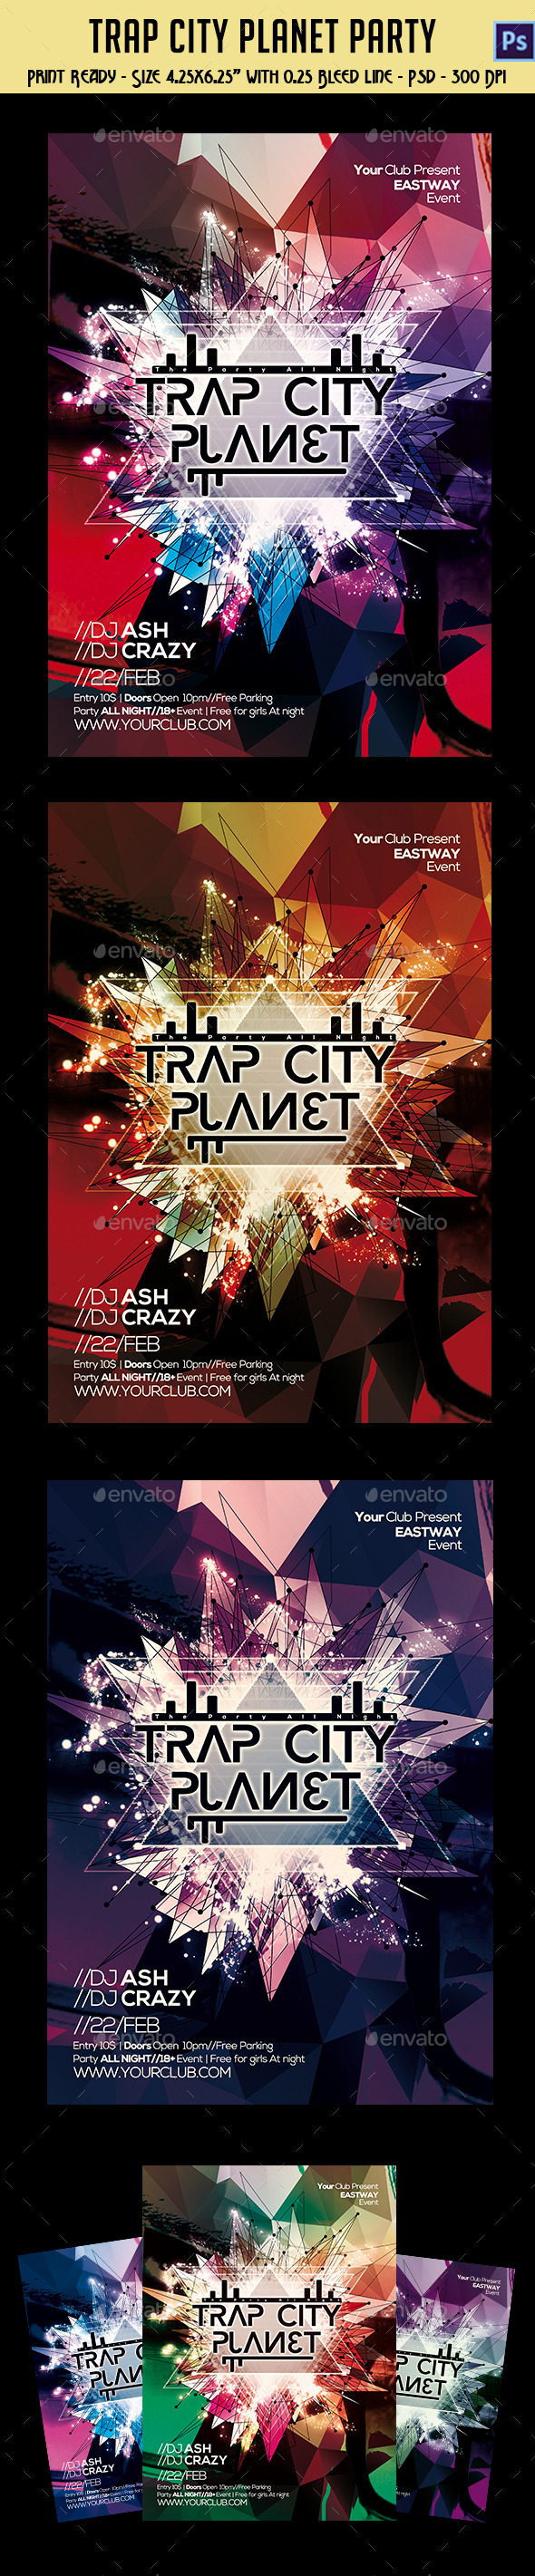 Trap City Planet Party Template - Clubs & Parties Events